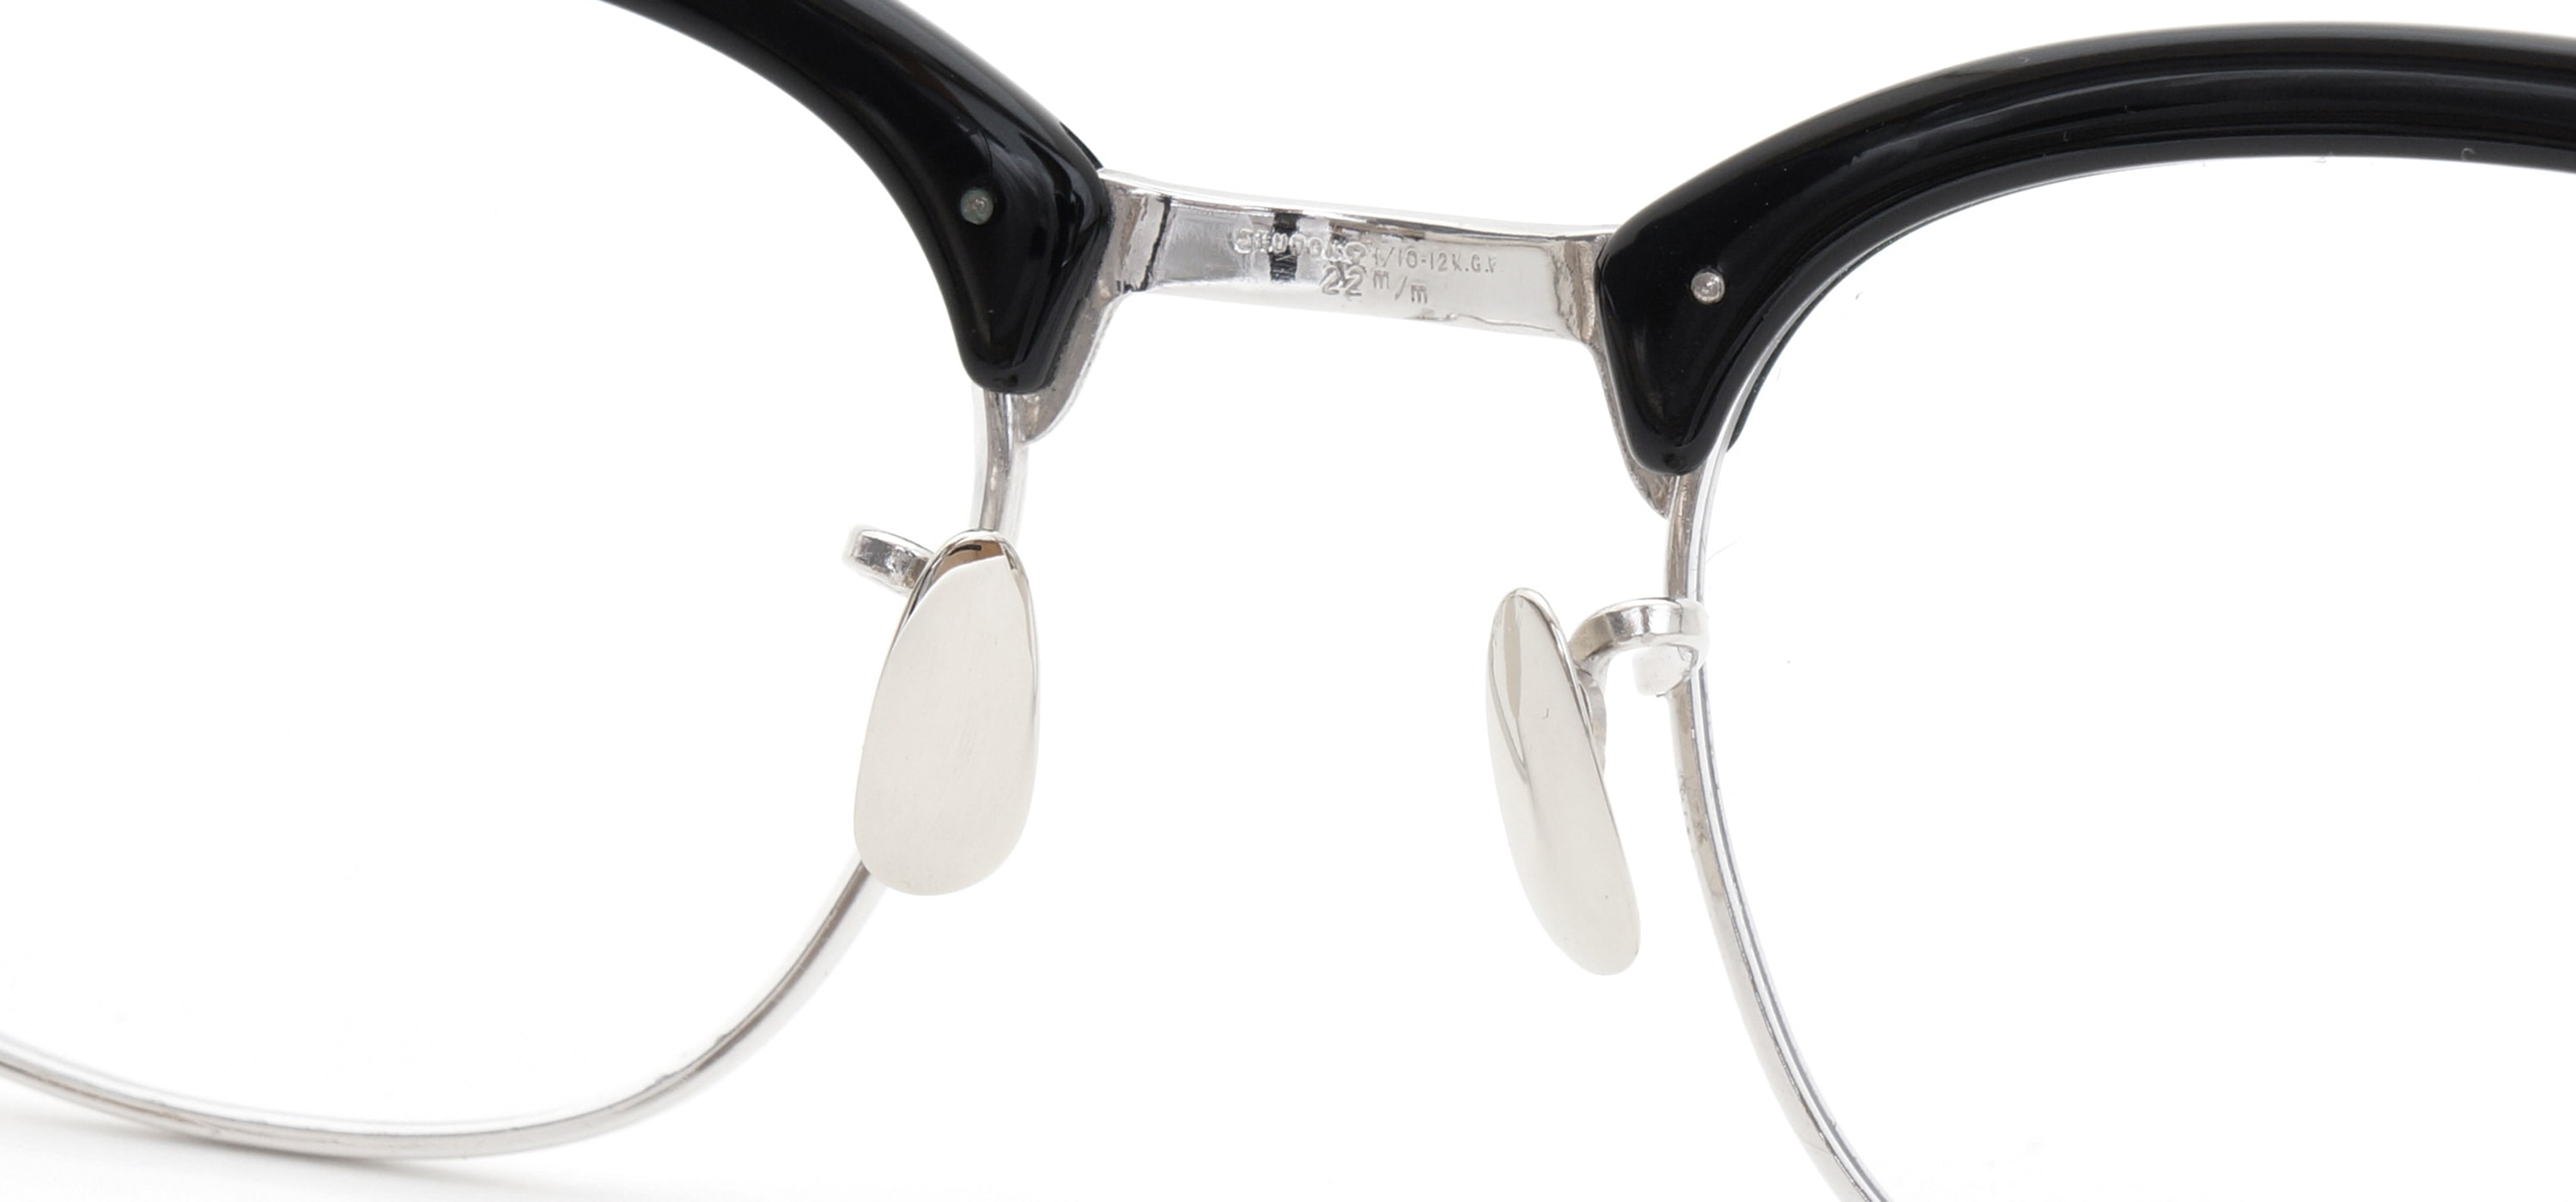 The Spectacle メガネ 1950s-1960s SHURON RONSIR GF-Temple Black WG 1/10 12KGF 46/22 イメージ15